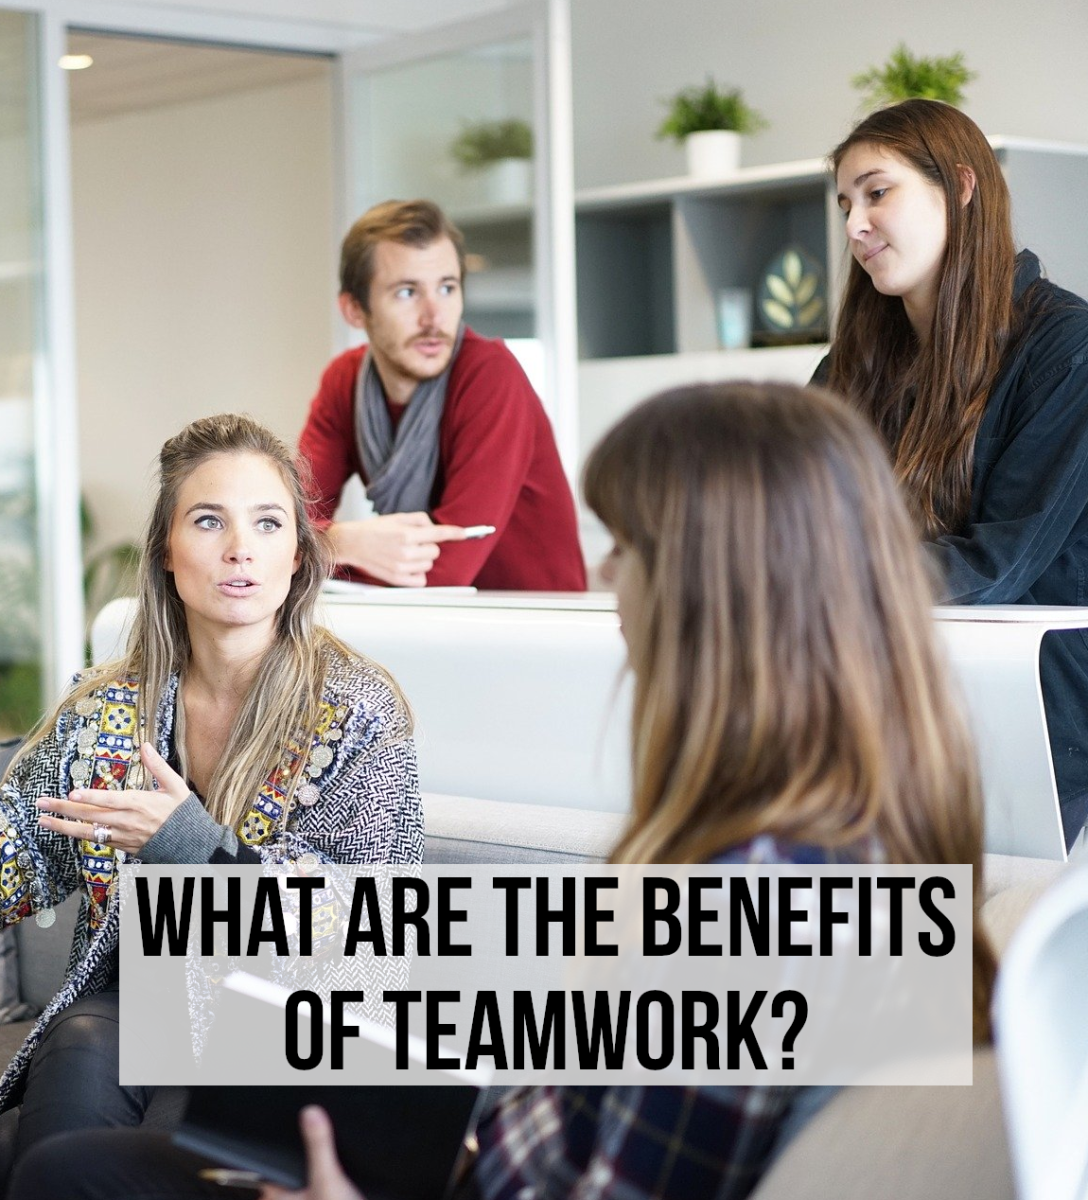 Advantages of teamwork: Although independent work by individuals is necessary at times, the benefits of working as a coordinated group cannot be underestimated.